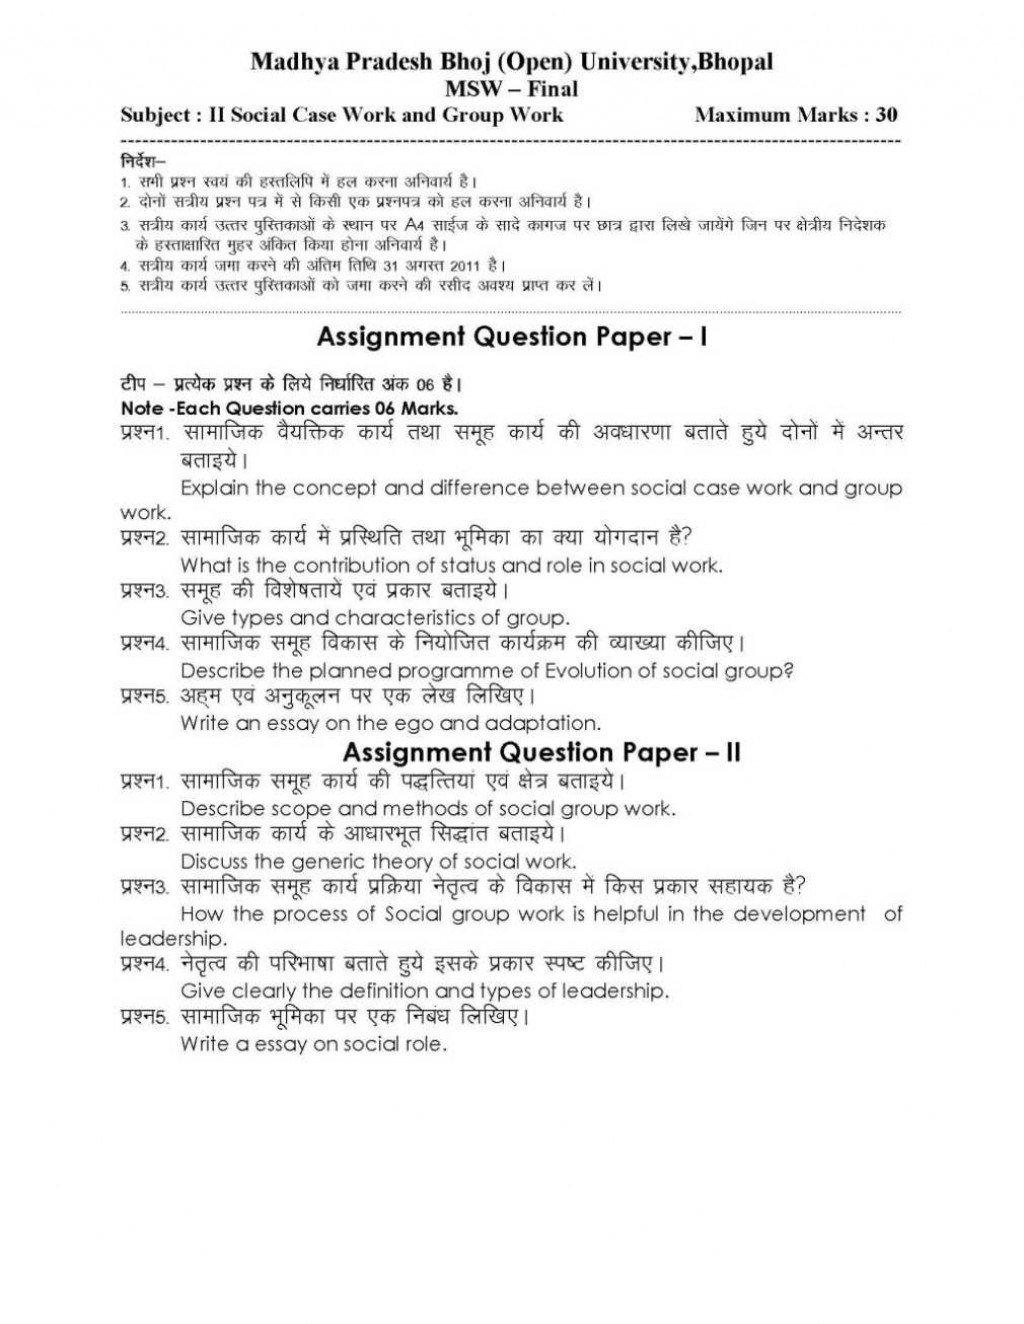 012 Bhoj University Bhopal Msw Definition Essays Surprising Essay Examples Family Heroism Pdf Large